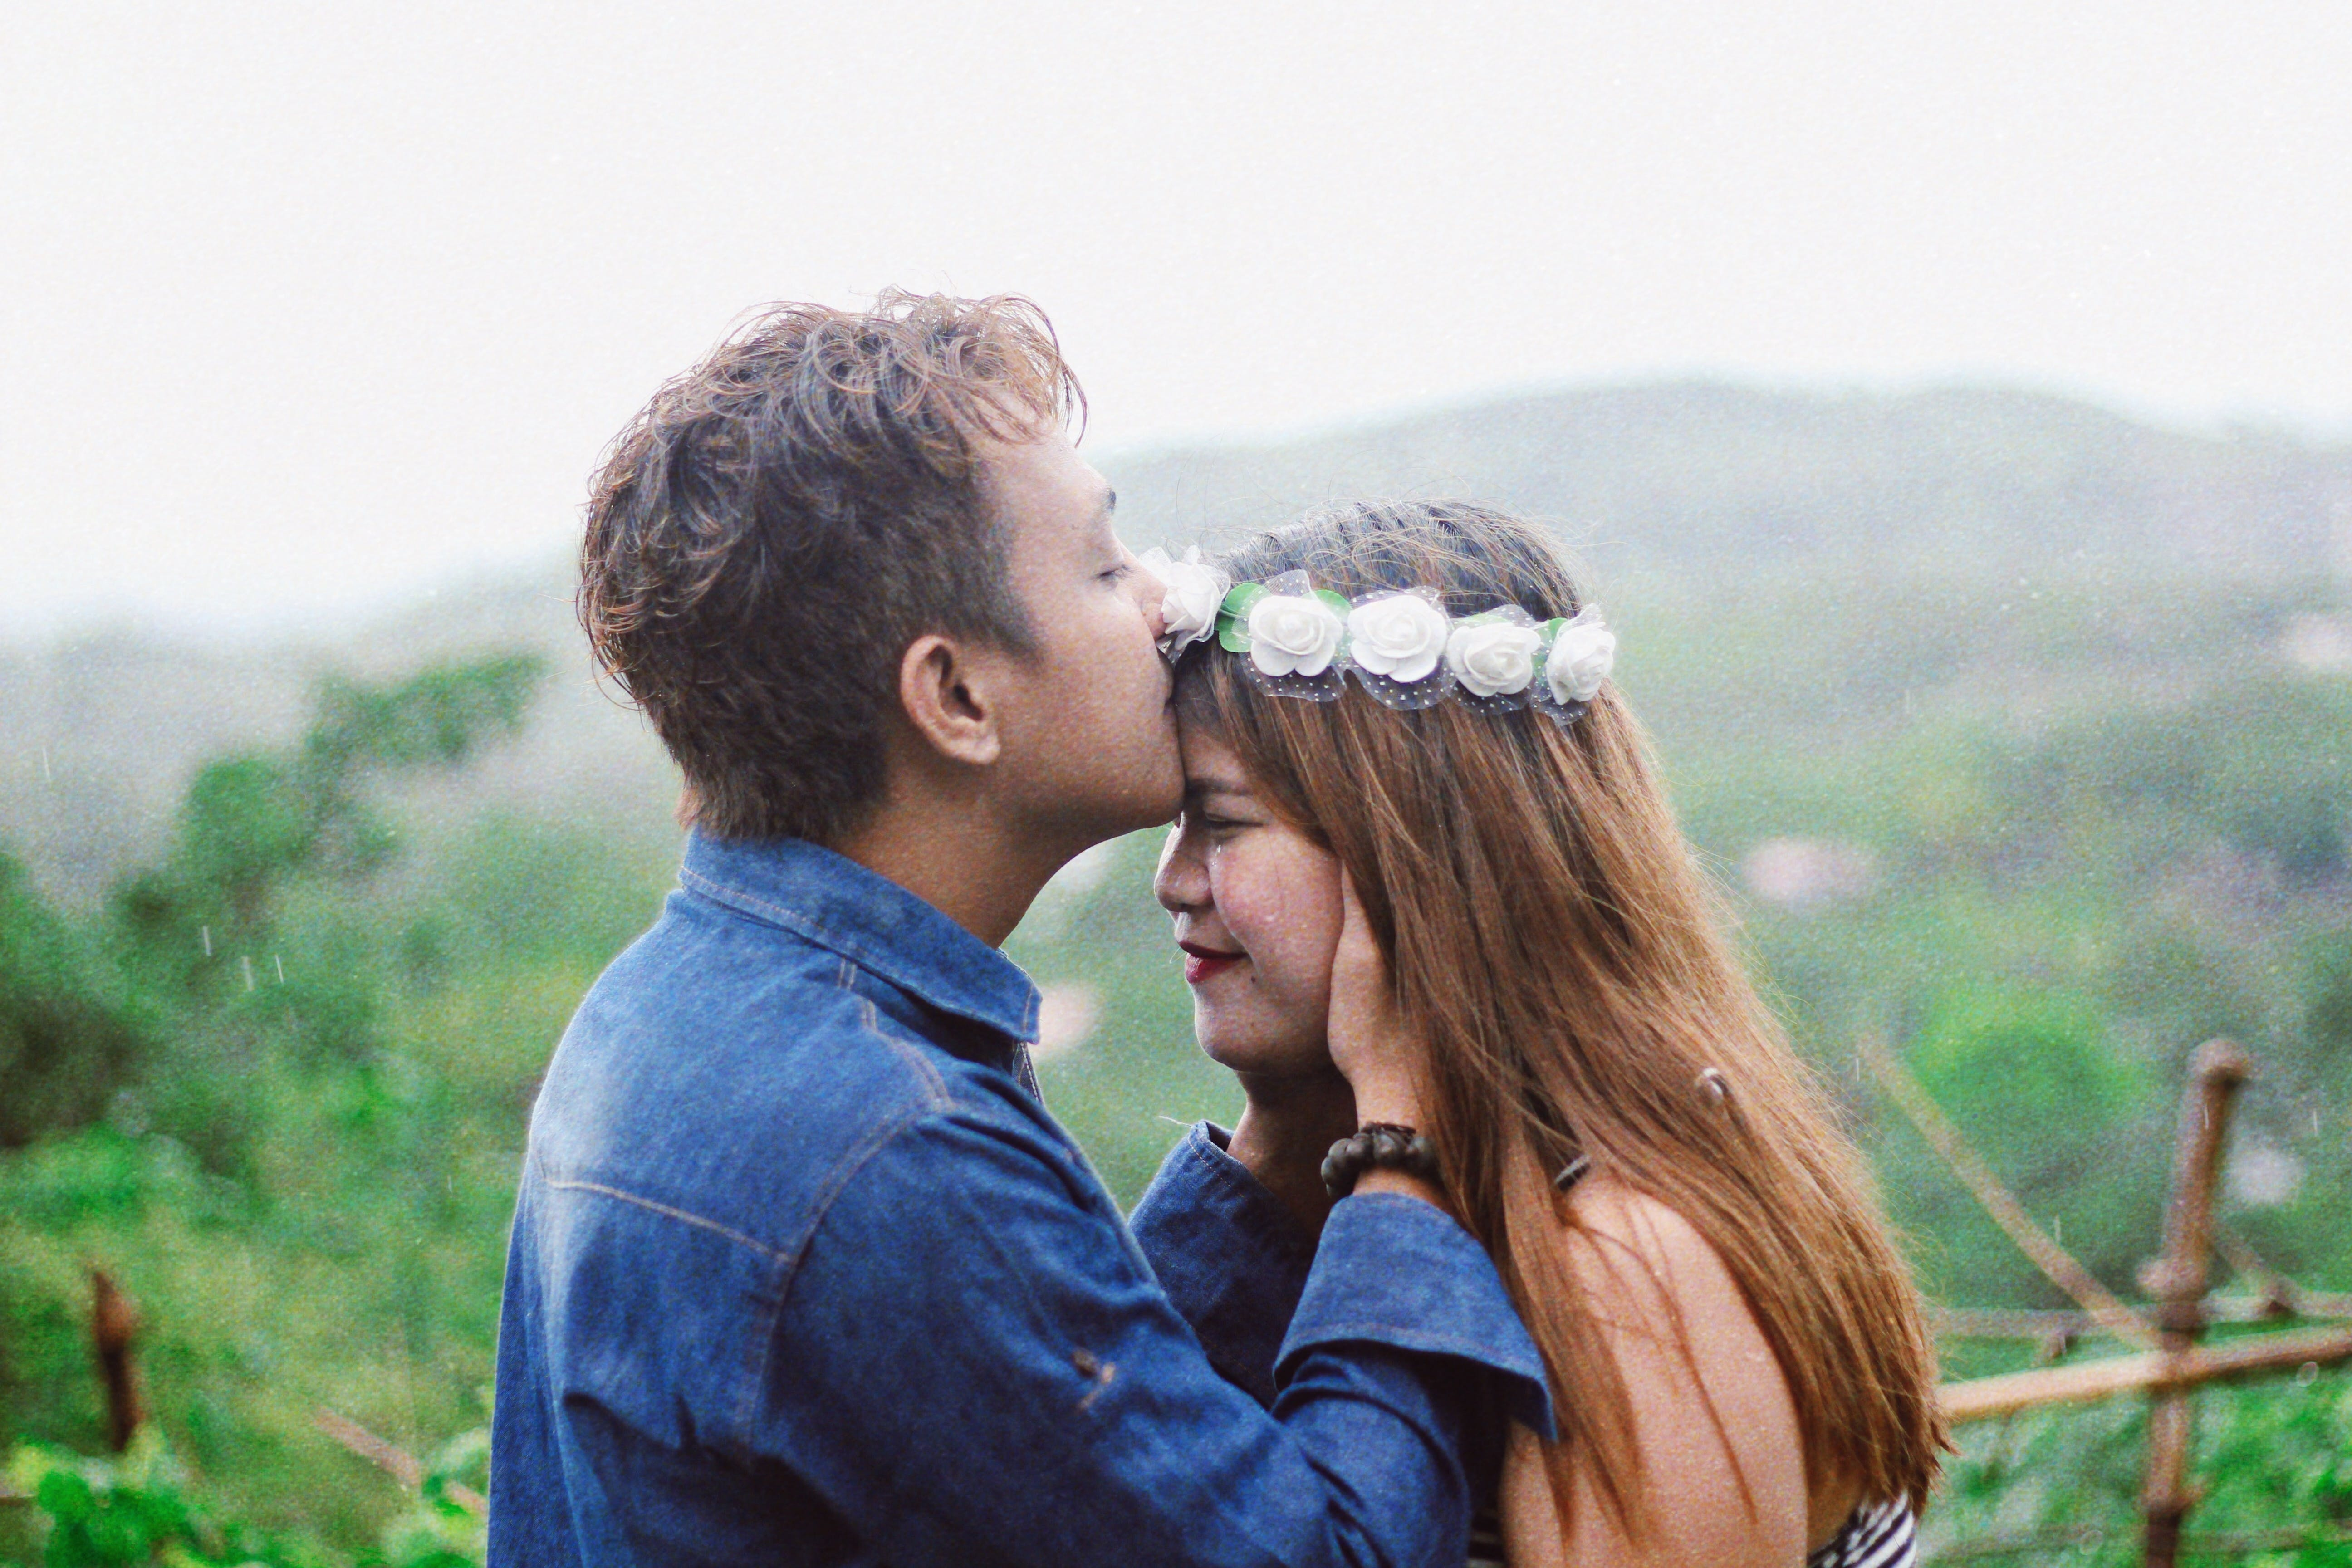 Man Wearing Blue Denim Jacket While Kissing Woman's Forehead